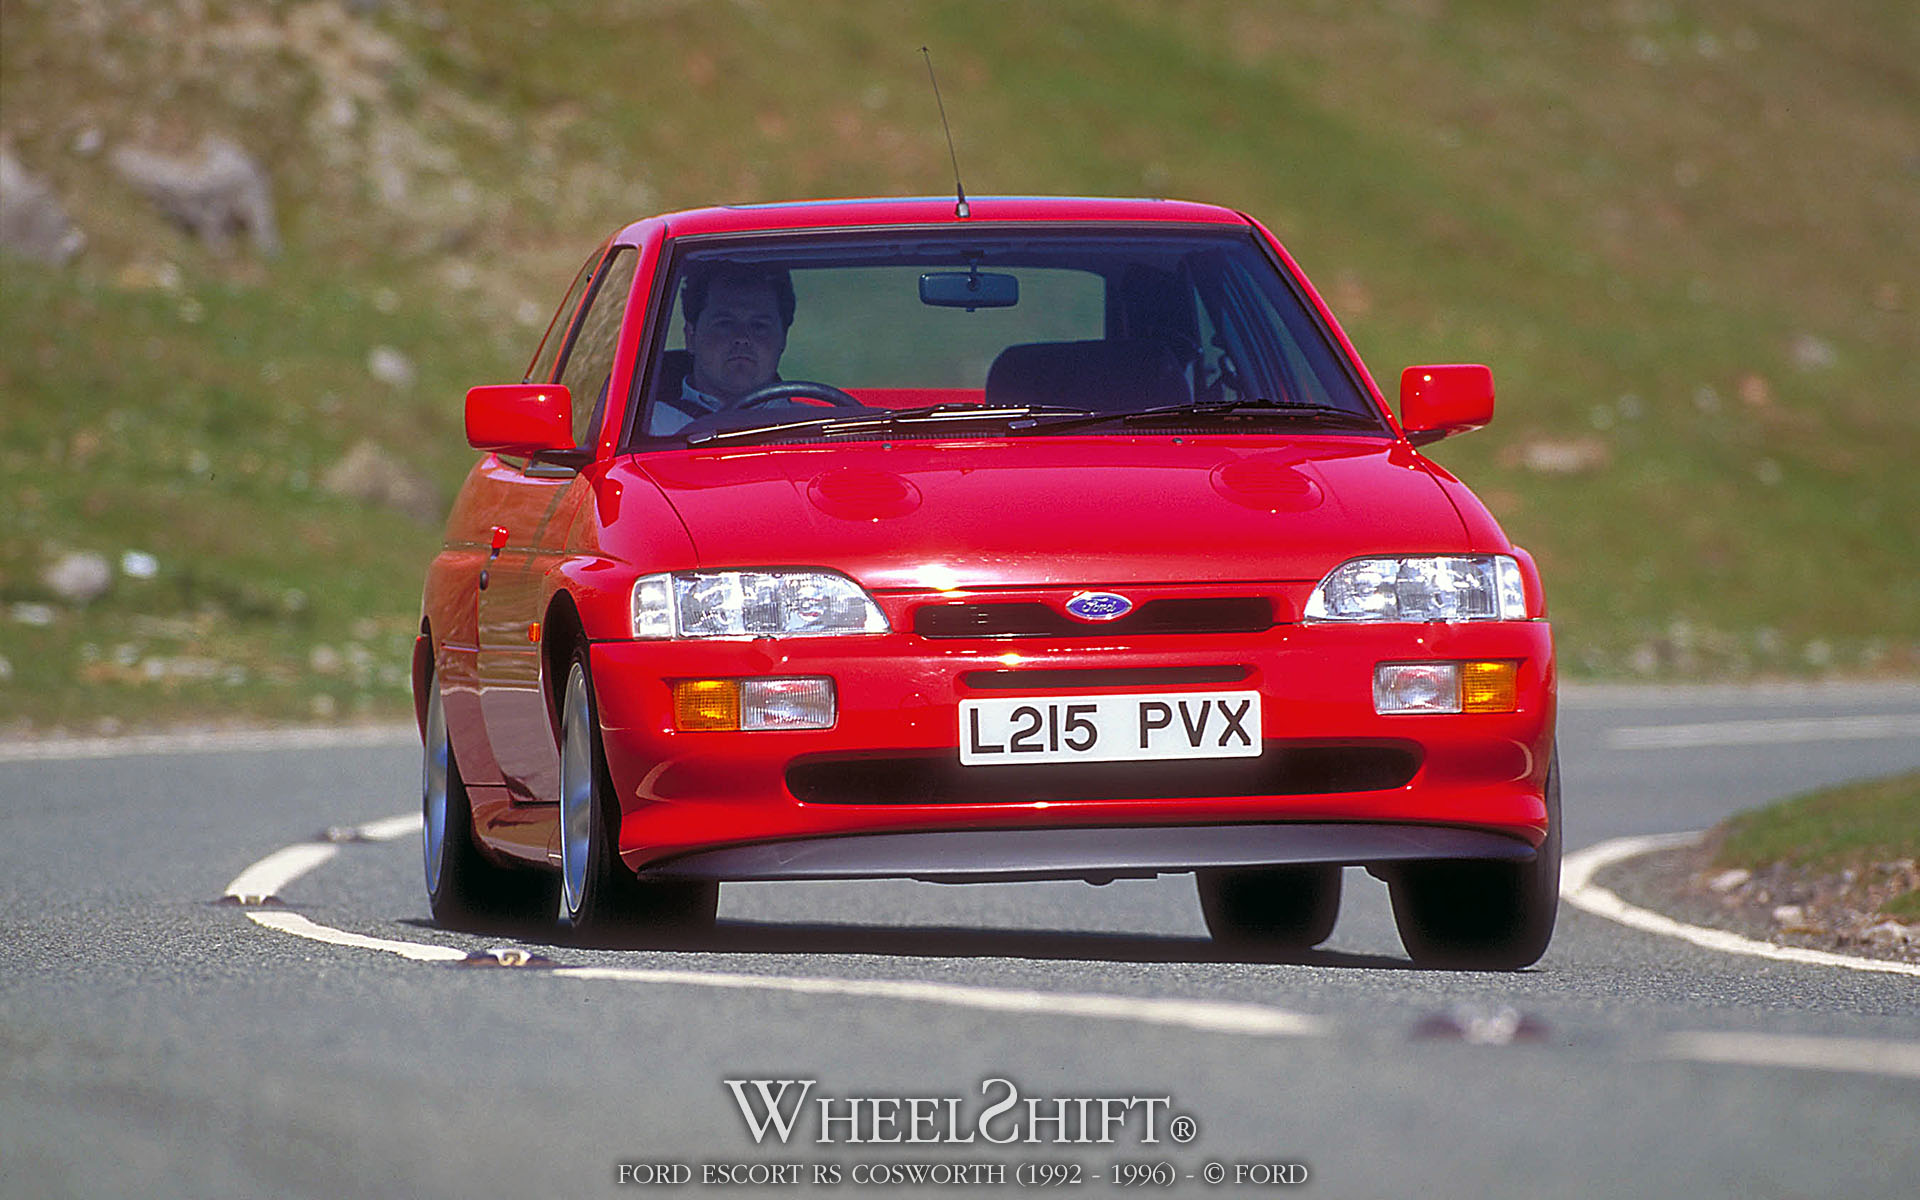 Ford Escort RS Cosworth (1992 - 1996)